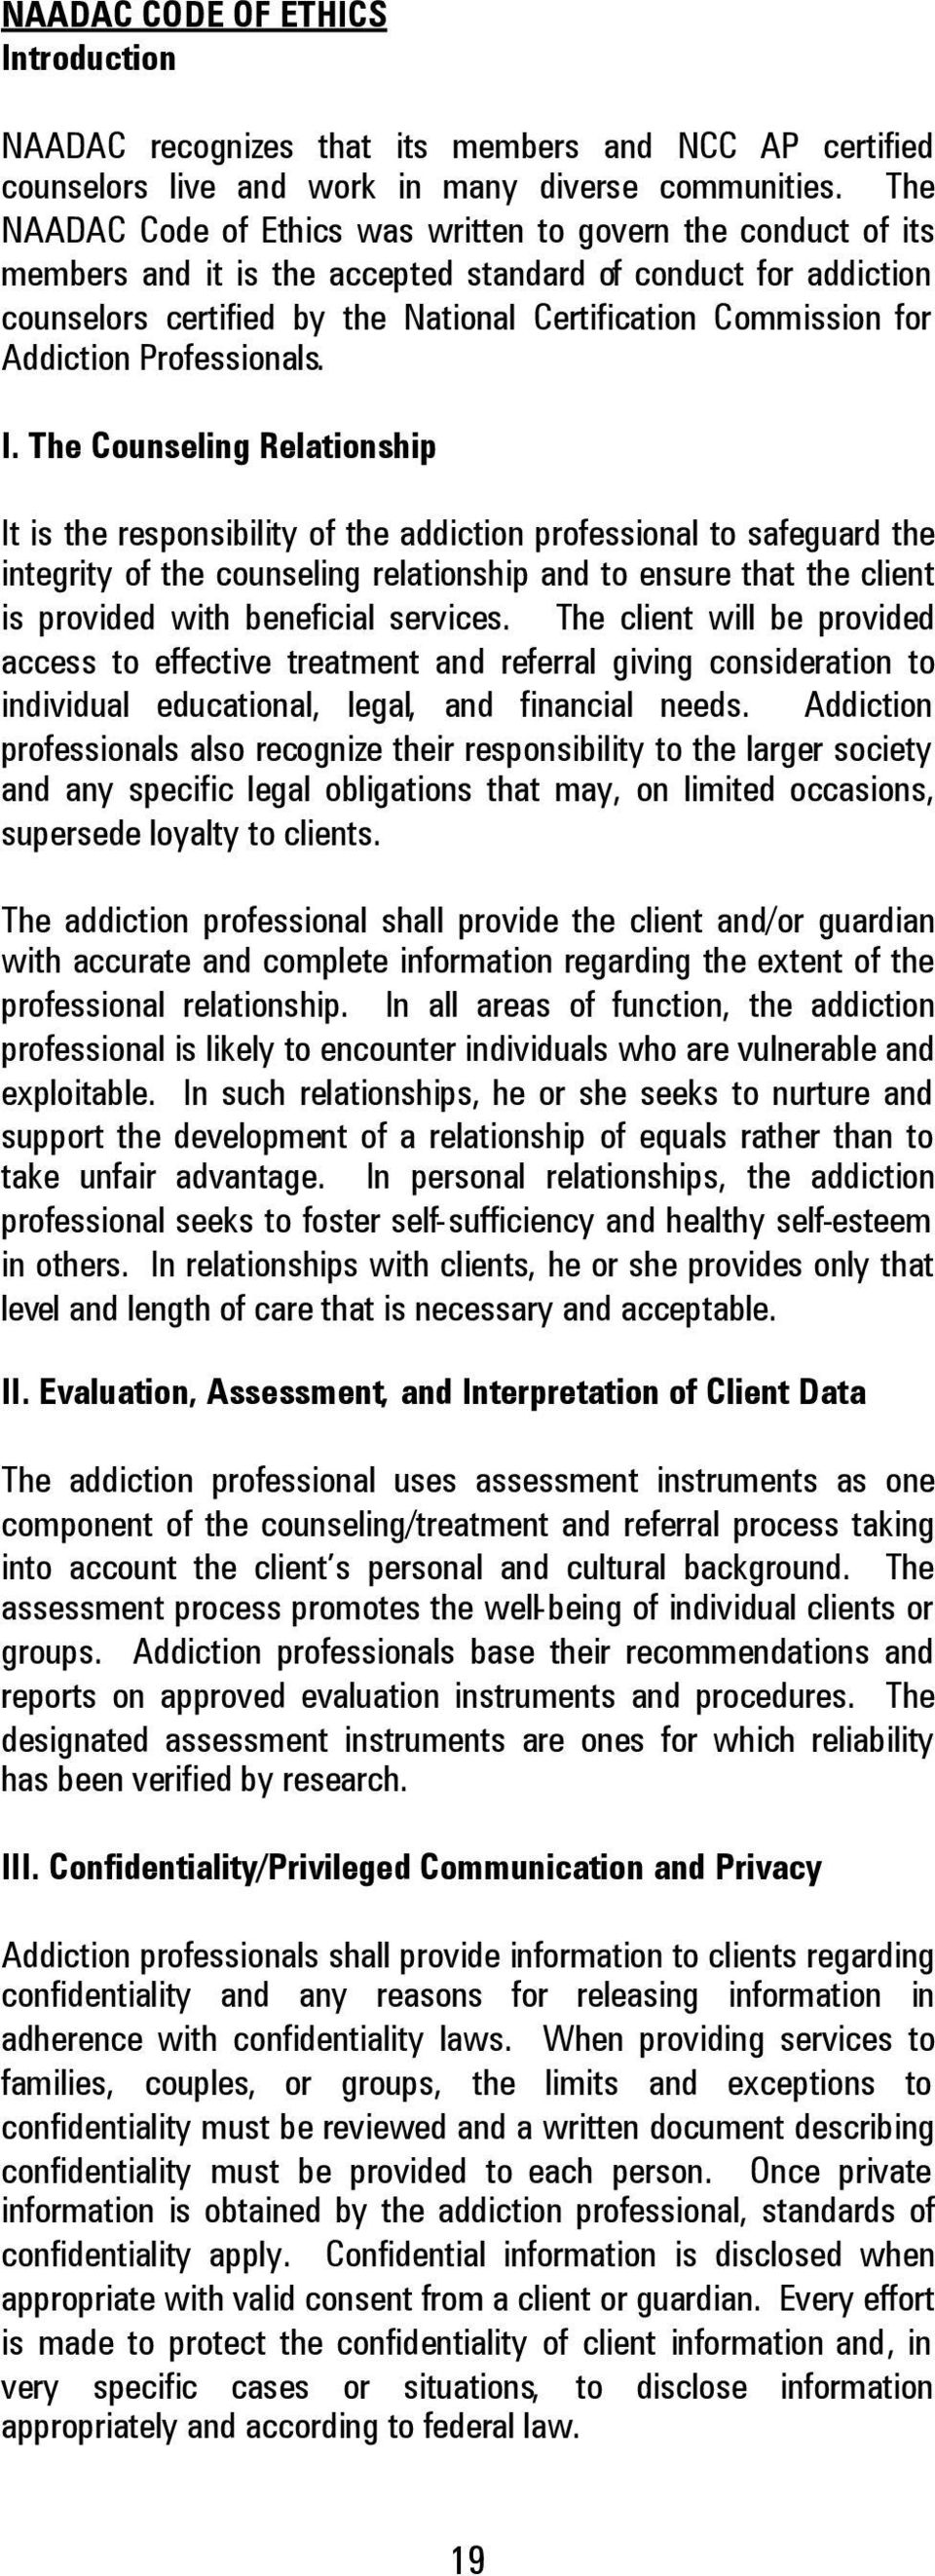 National Certification Examination For Master Addiction Counselors